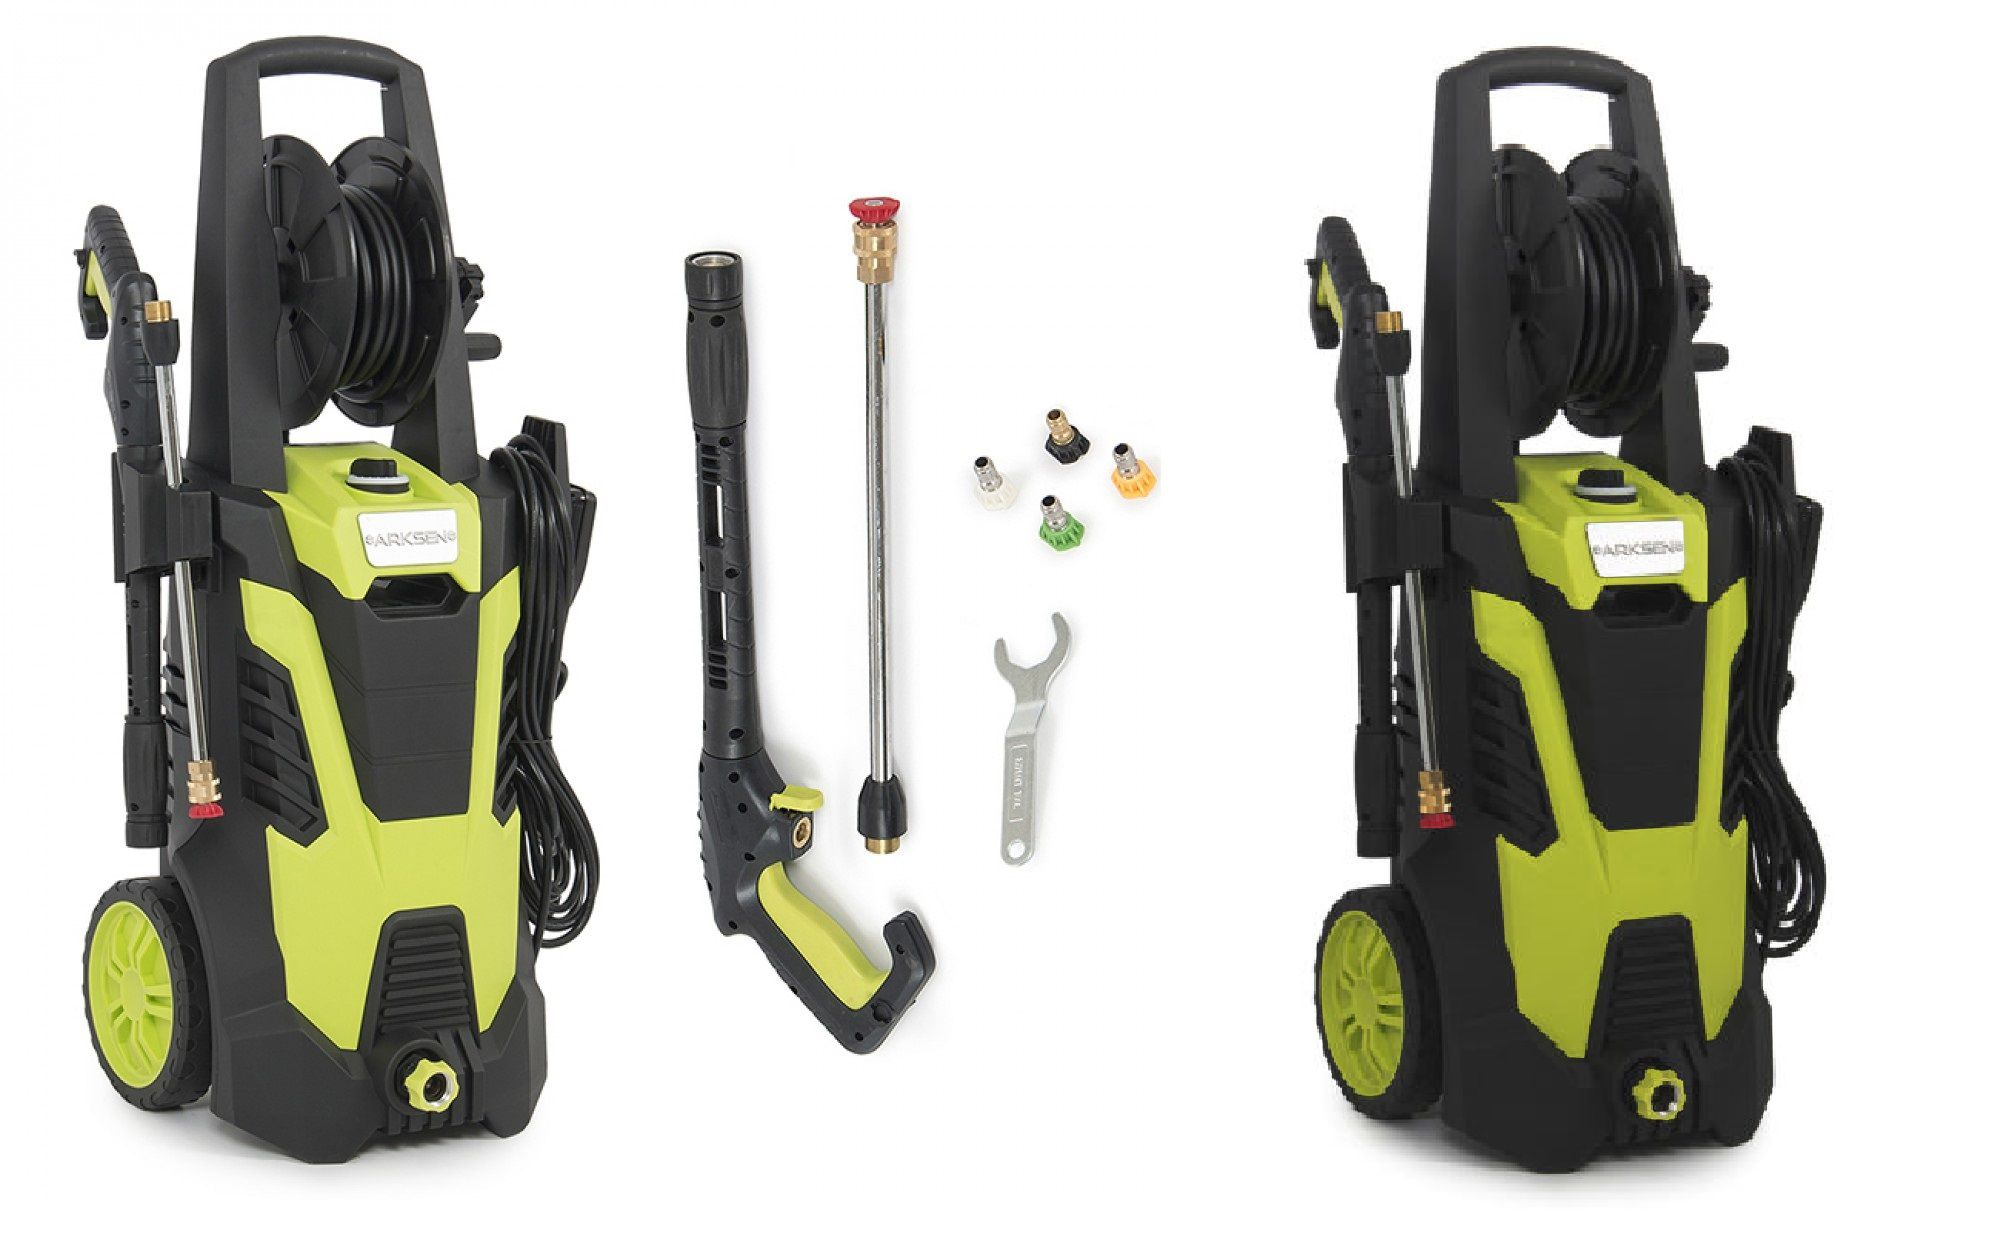 ARKSEN 3000 PSI Electric Pressure Washer